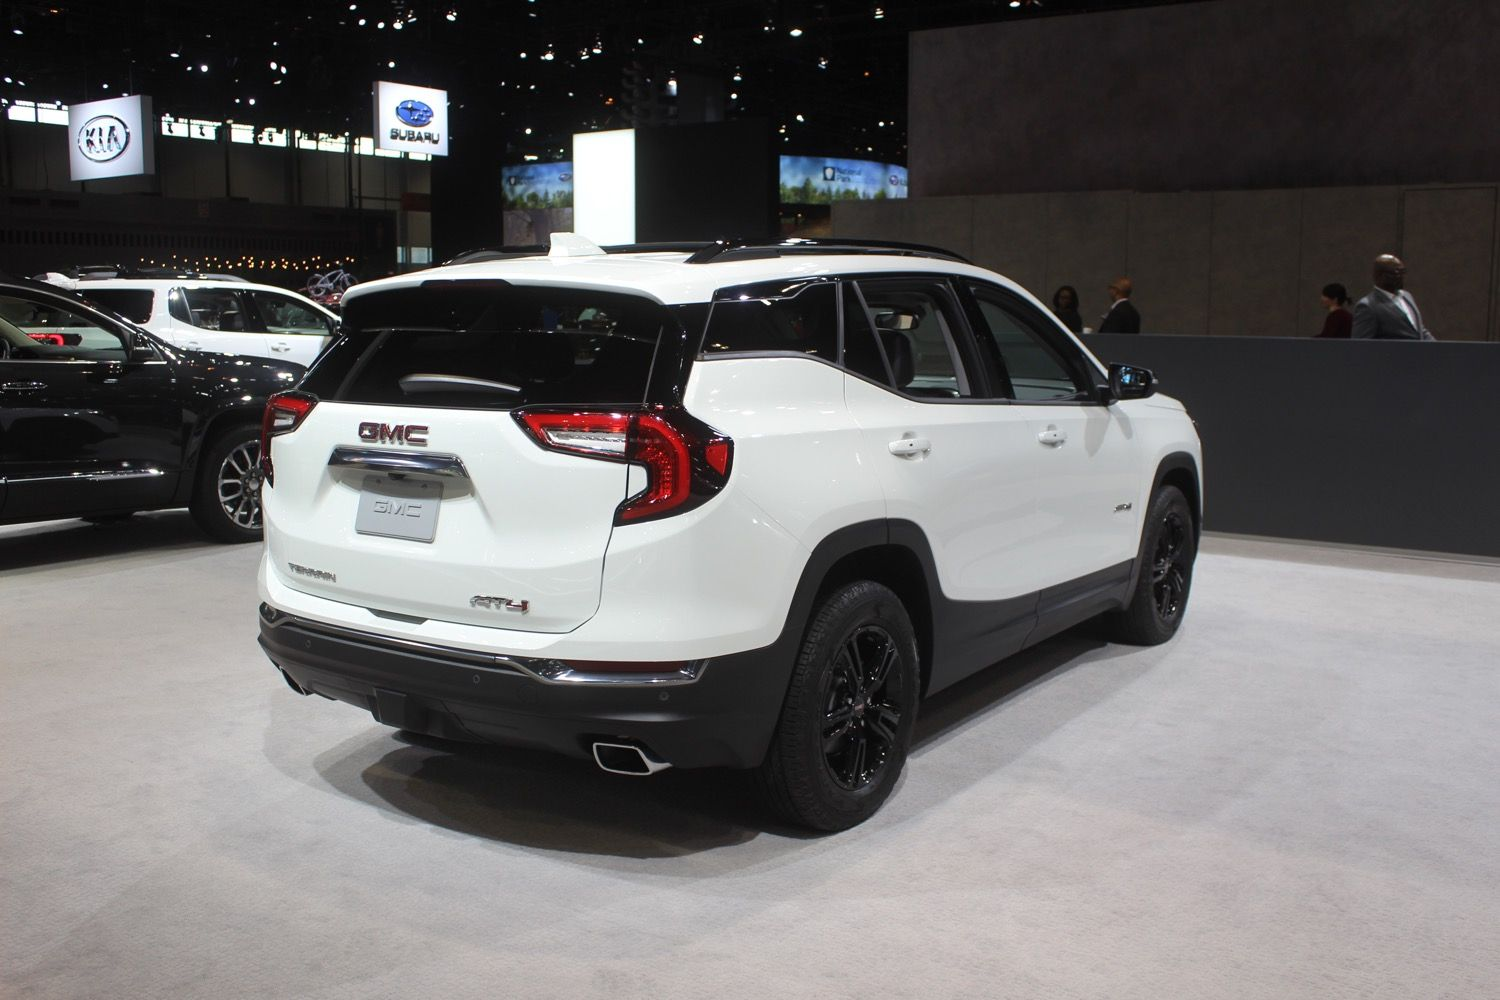 2021 Gmc Terrain At4 Suv Price Review And Buying Guide Carindigo Com